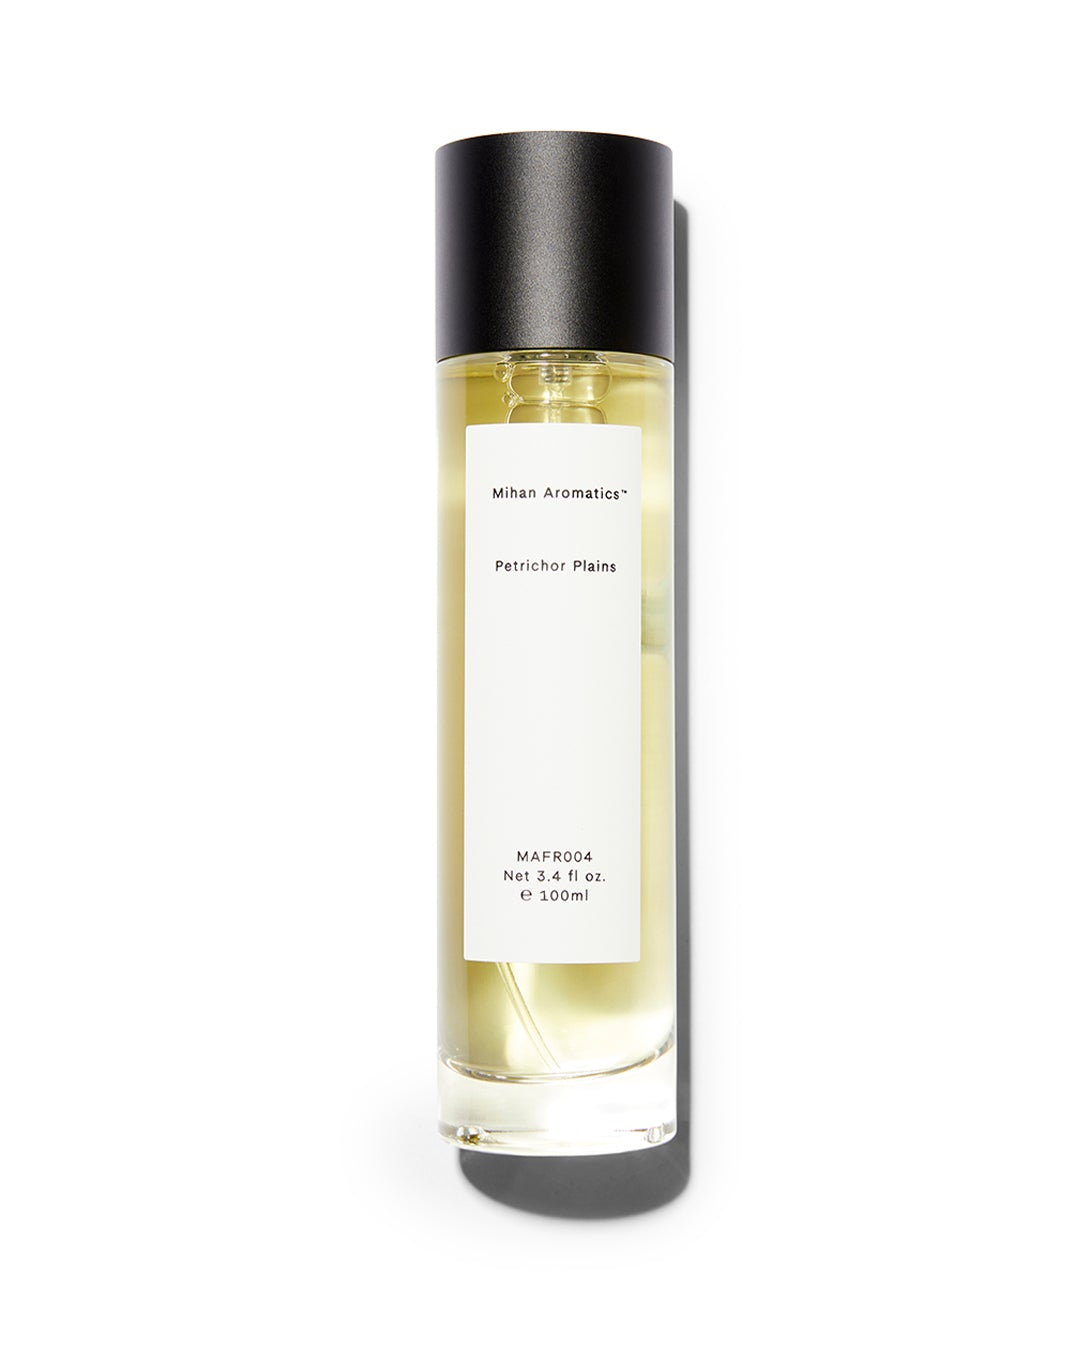 Mihan Aromatics | Petrichor Plains Parfum